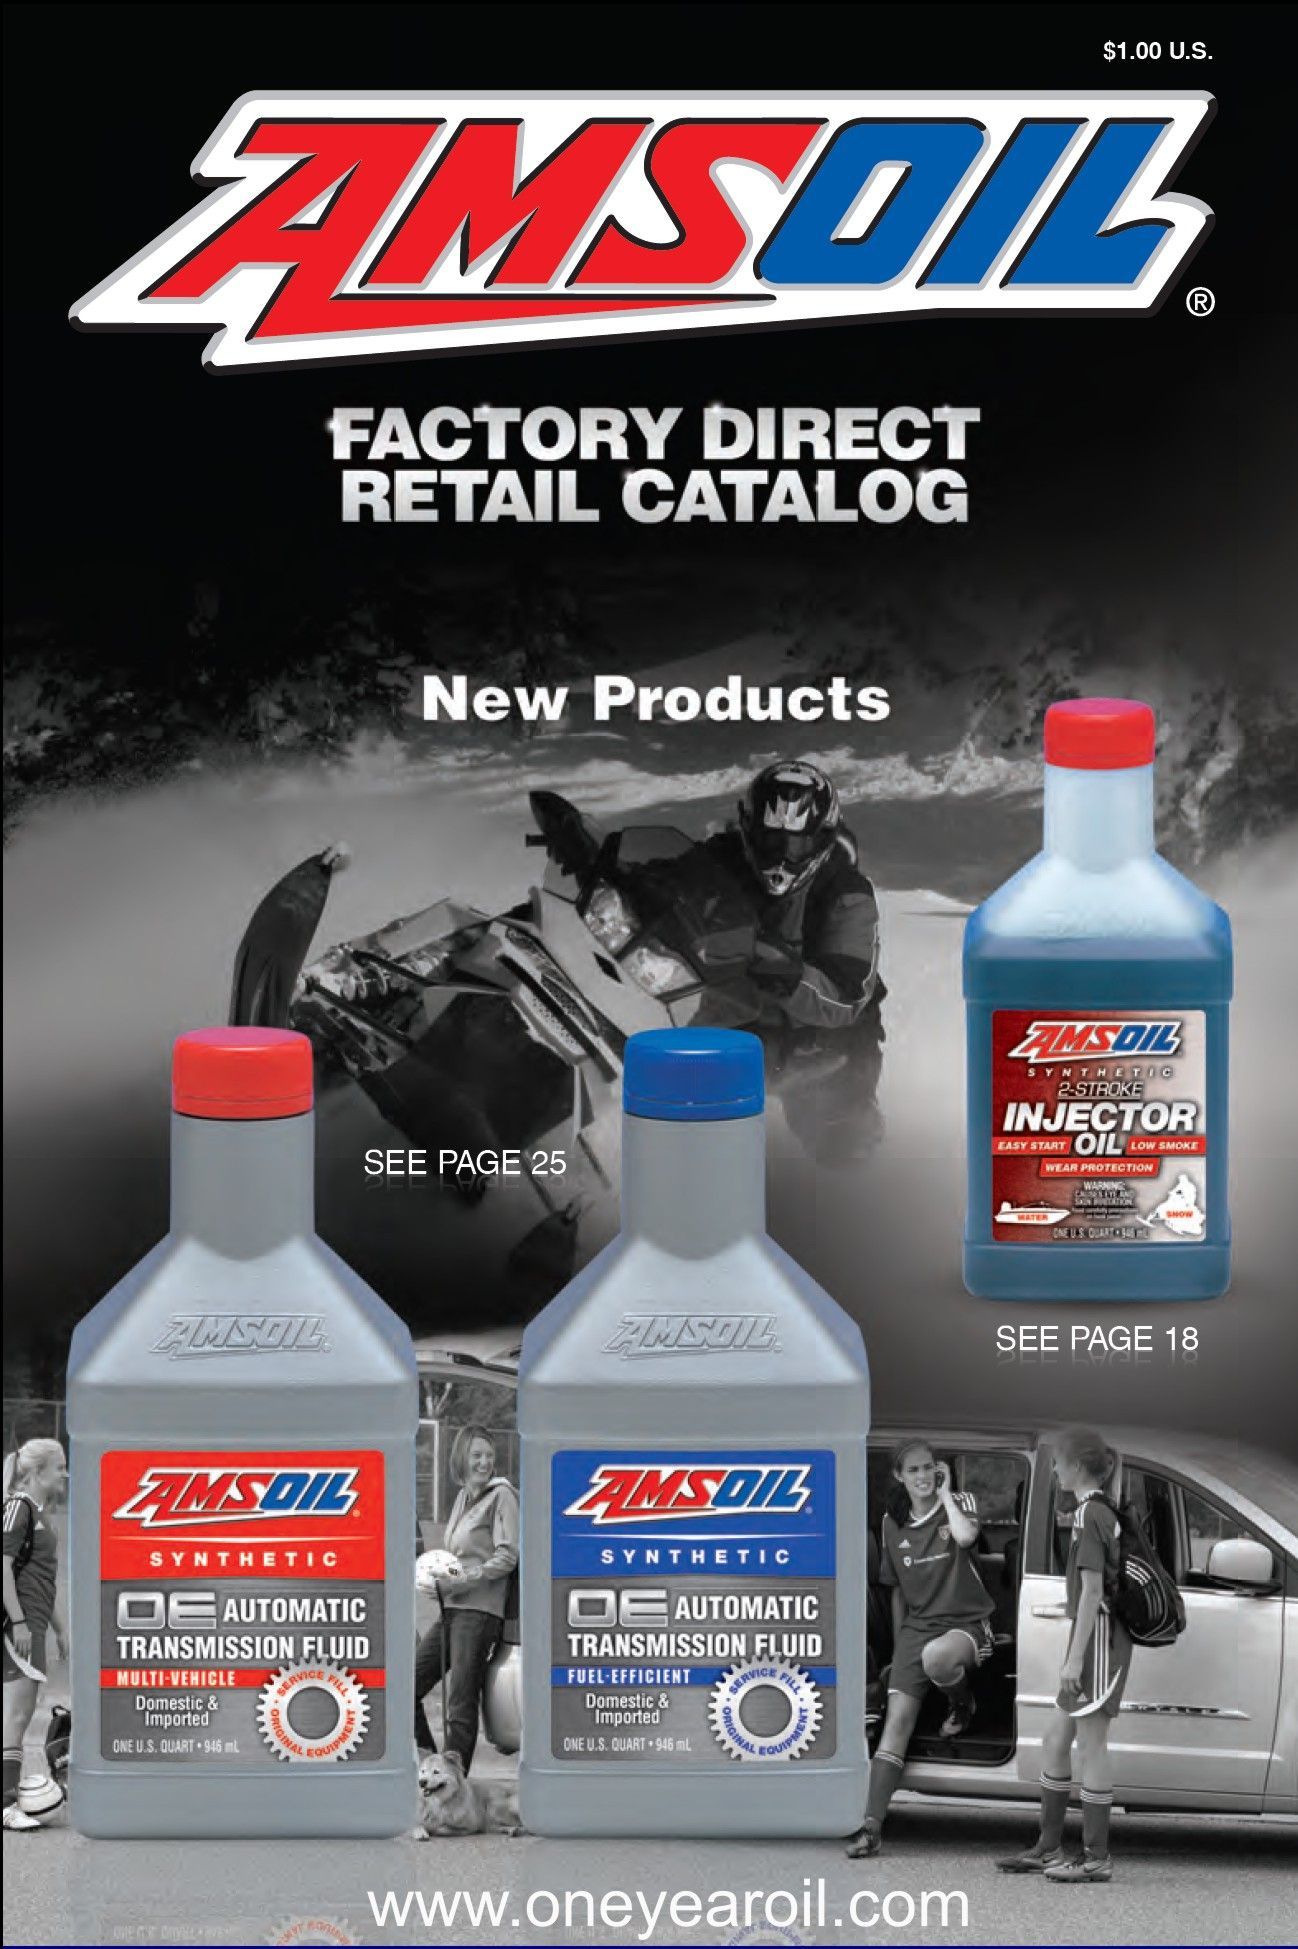 Amsoil Retail Catalog Free Synthetic Oil 25 000 mile or 1